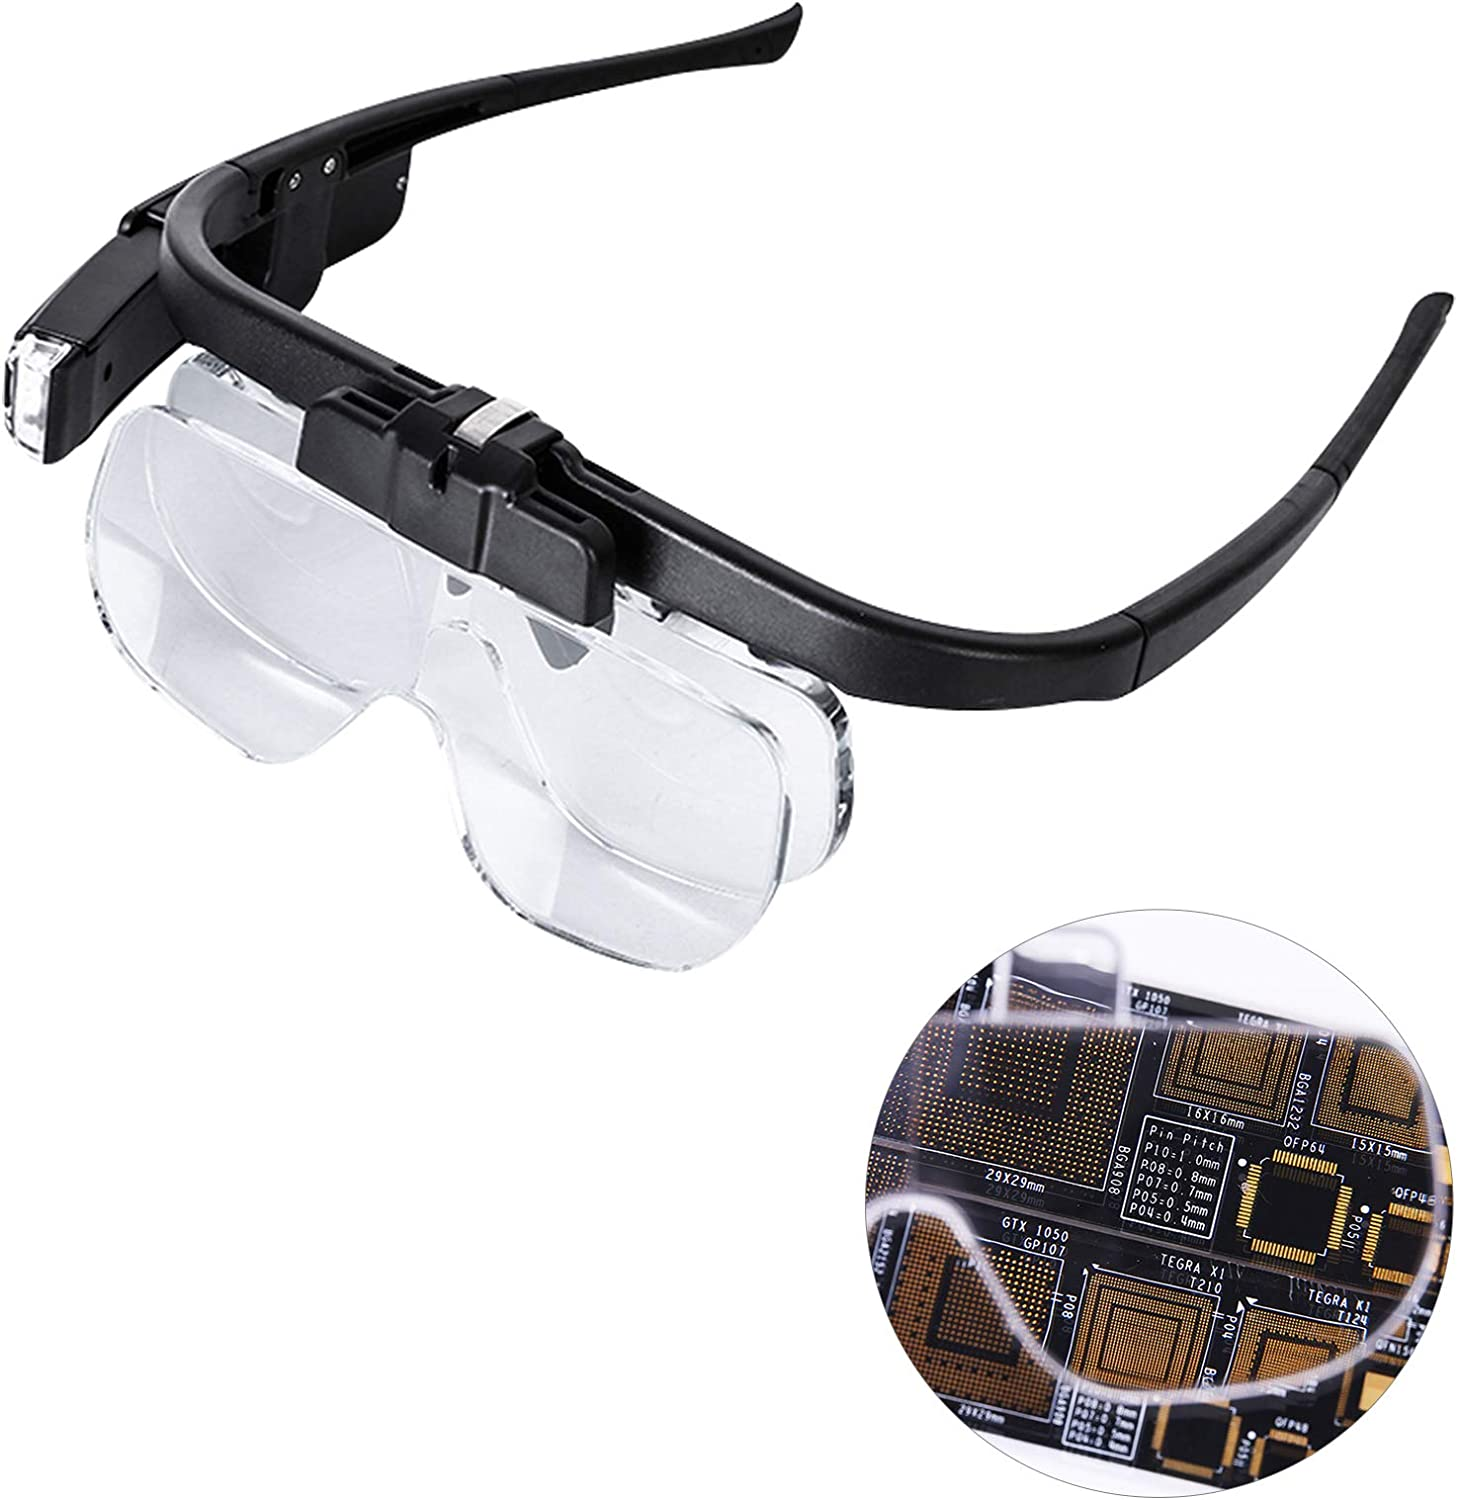 LXIANGN Head Classic Mount Magnifier Magnifying Led with Light Lam Glass Lowest price challenge